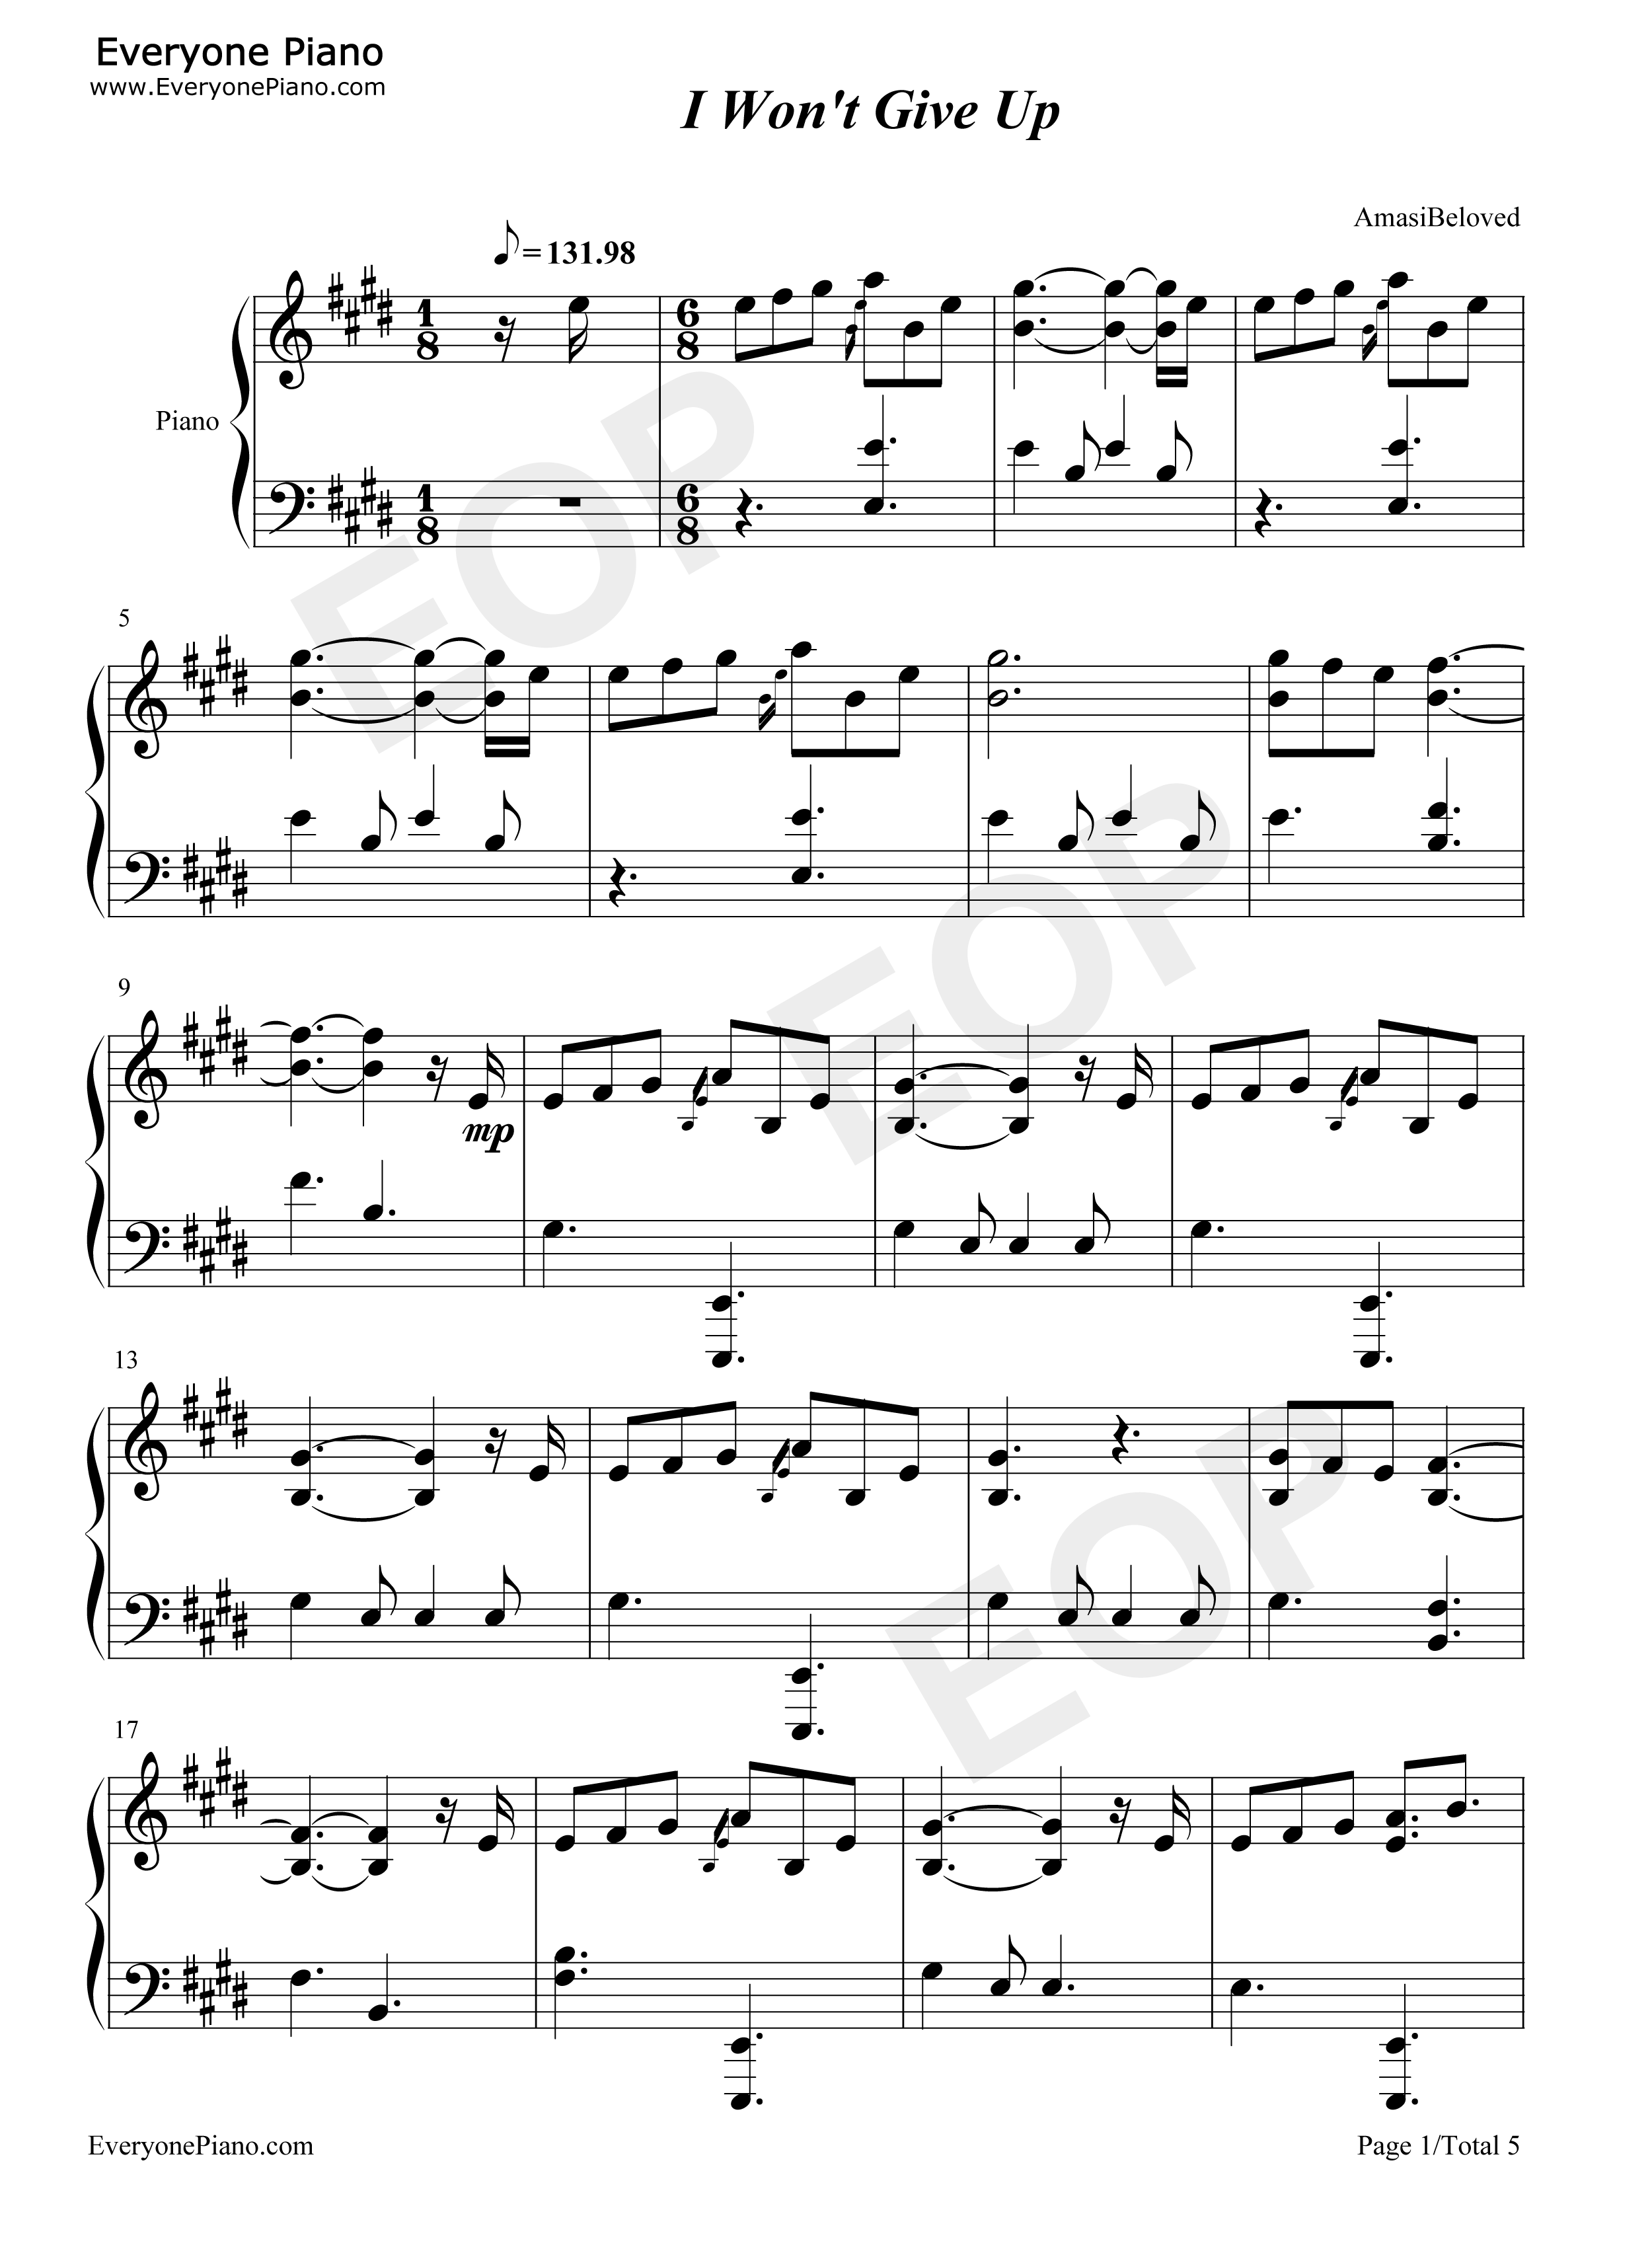 I wont give up jason mraz stave preview 1 free piano sheet music listen now print sheet i wont give up jason mraz stave preview 1 hexwebz Images